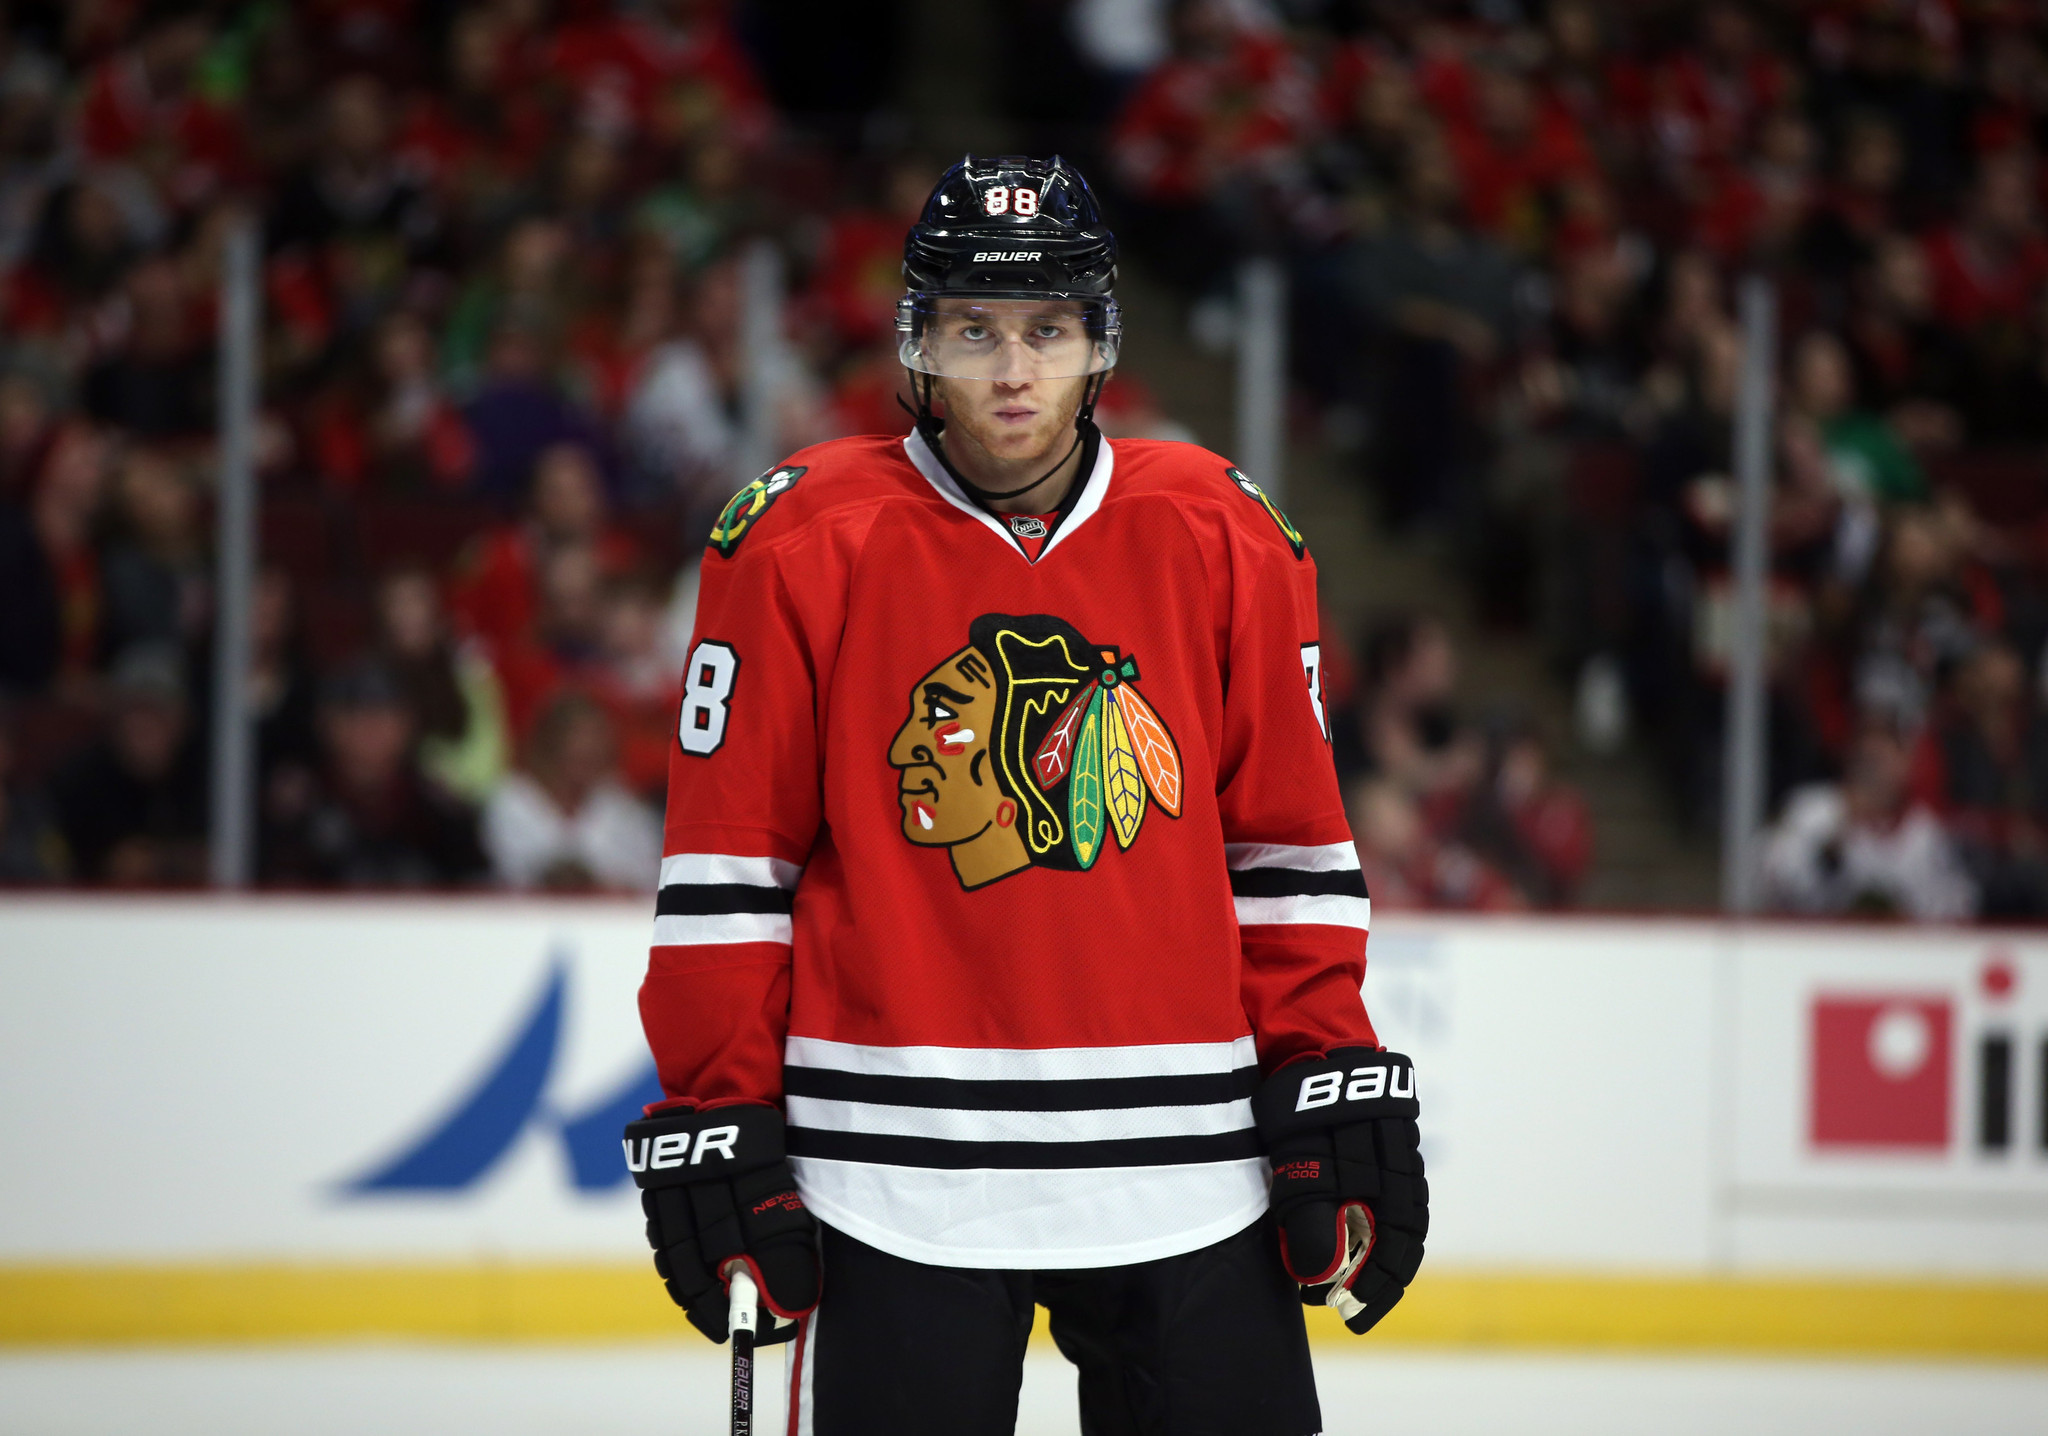 Quick Hits: NHL All Star Game, Patrick Kane, and the Dennis Wideman hit |